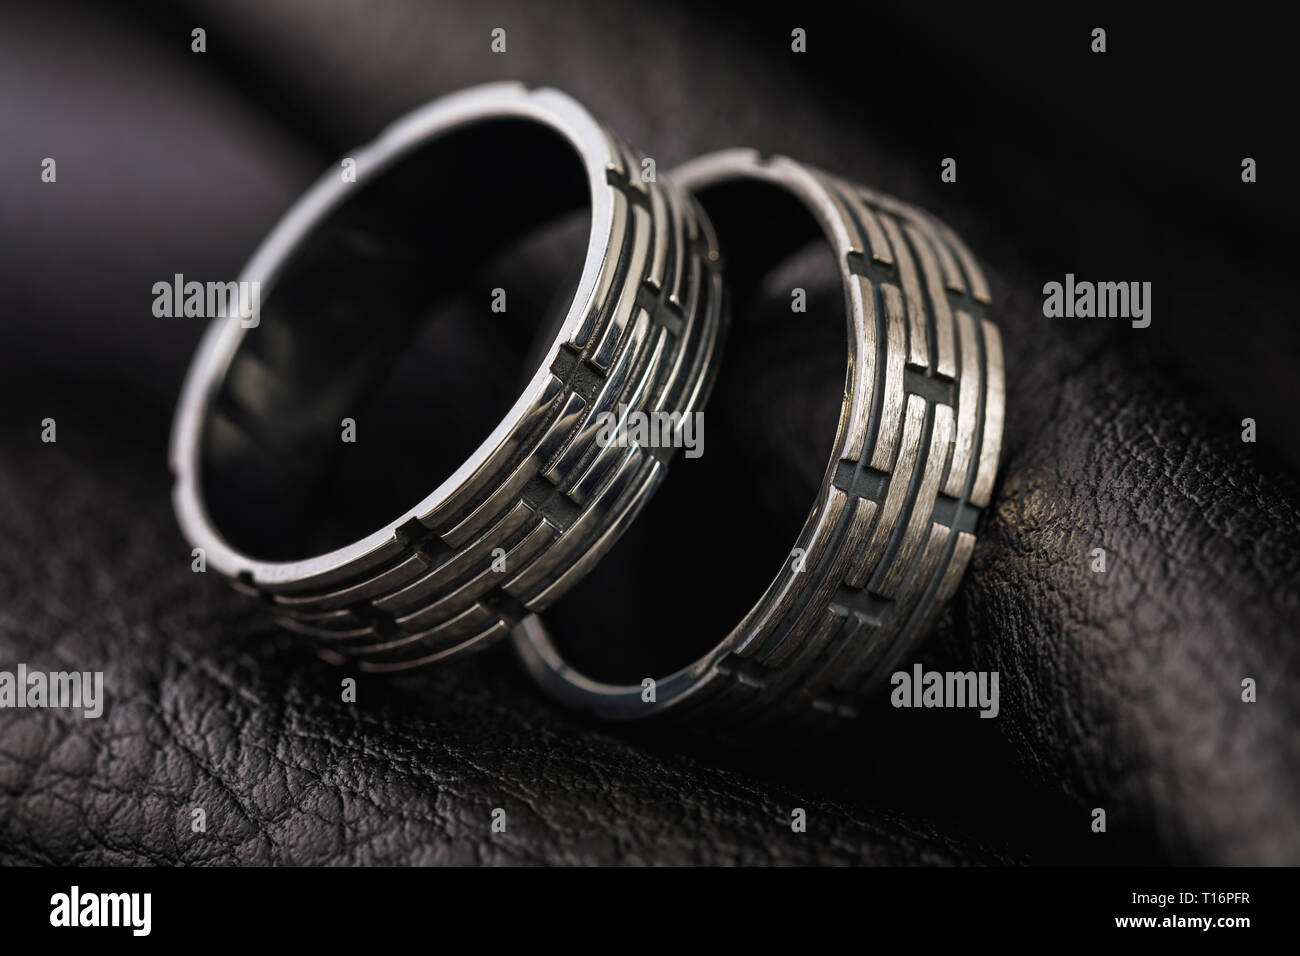 Two mens rings with different processing on a stand made of black leather - Stock Image